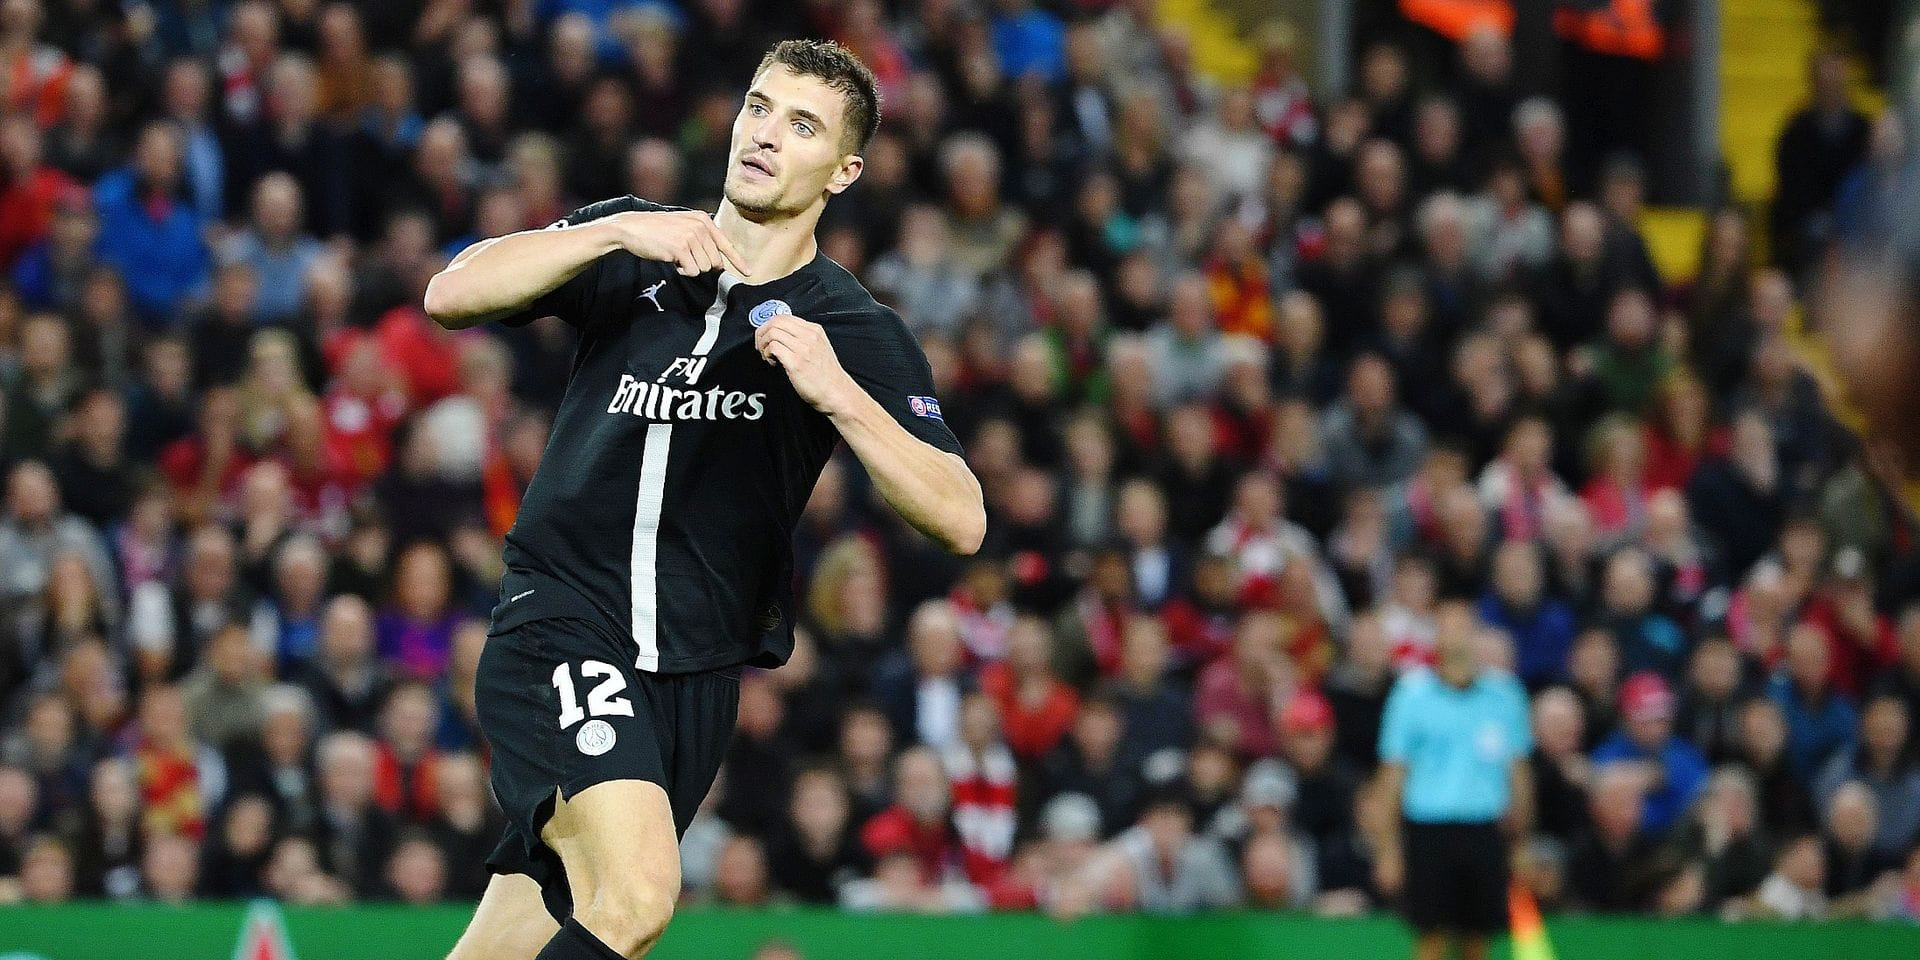 Paris Saint-Germain's Belgian defender Thomas Meunier celebrates scoring the team's first goal during the UEFA Champions League group C football match between Liverpool and Paris Saint-Germain at Anfield in Liverpool, north west England on September 18, 2018. (Photo by Paul ELLIS / AFP)